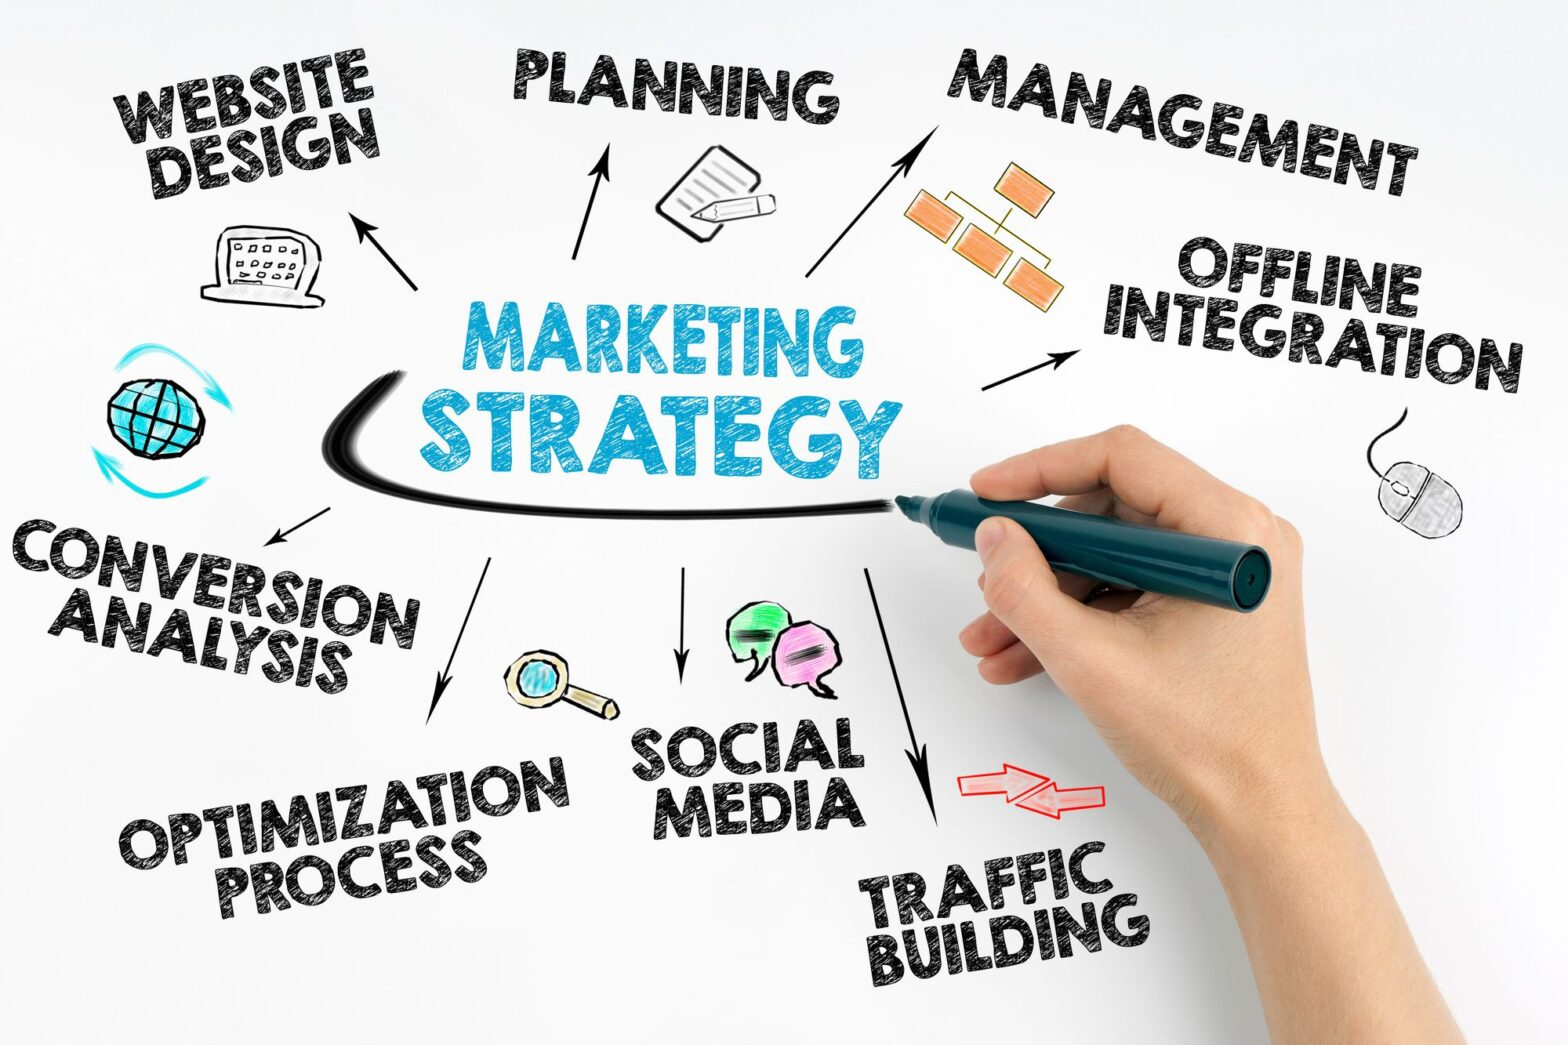 Effective marketing requires decision on product category